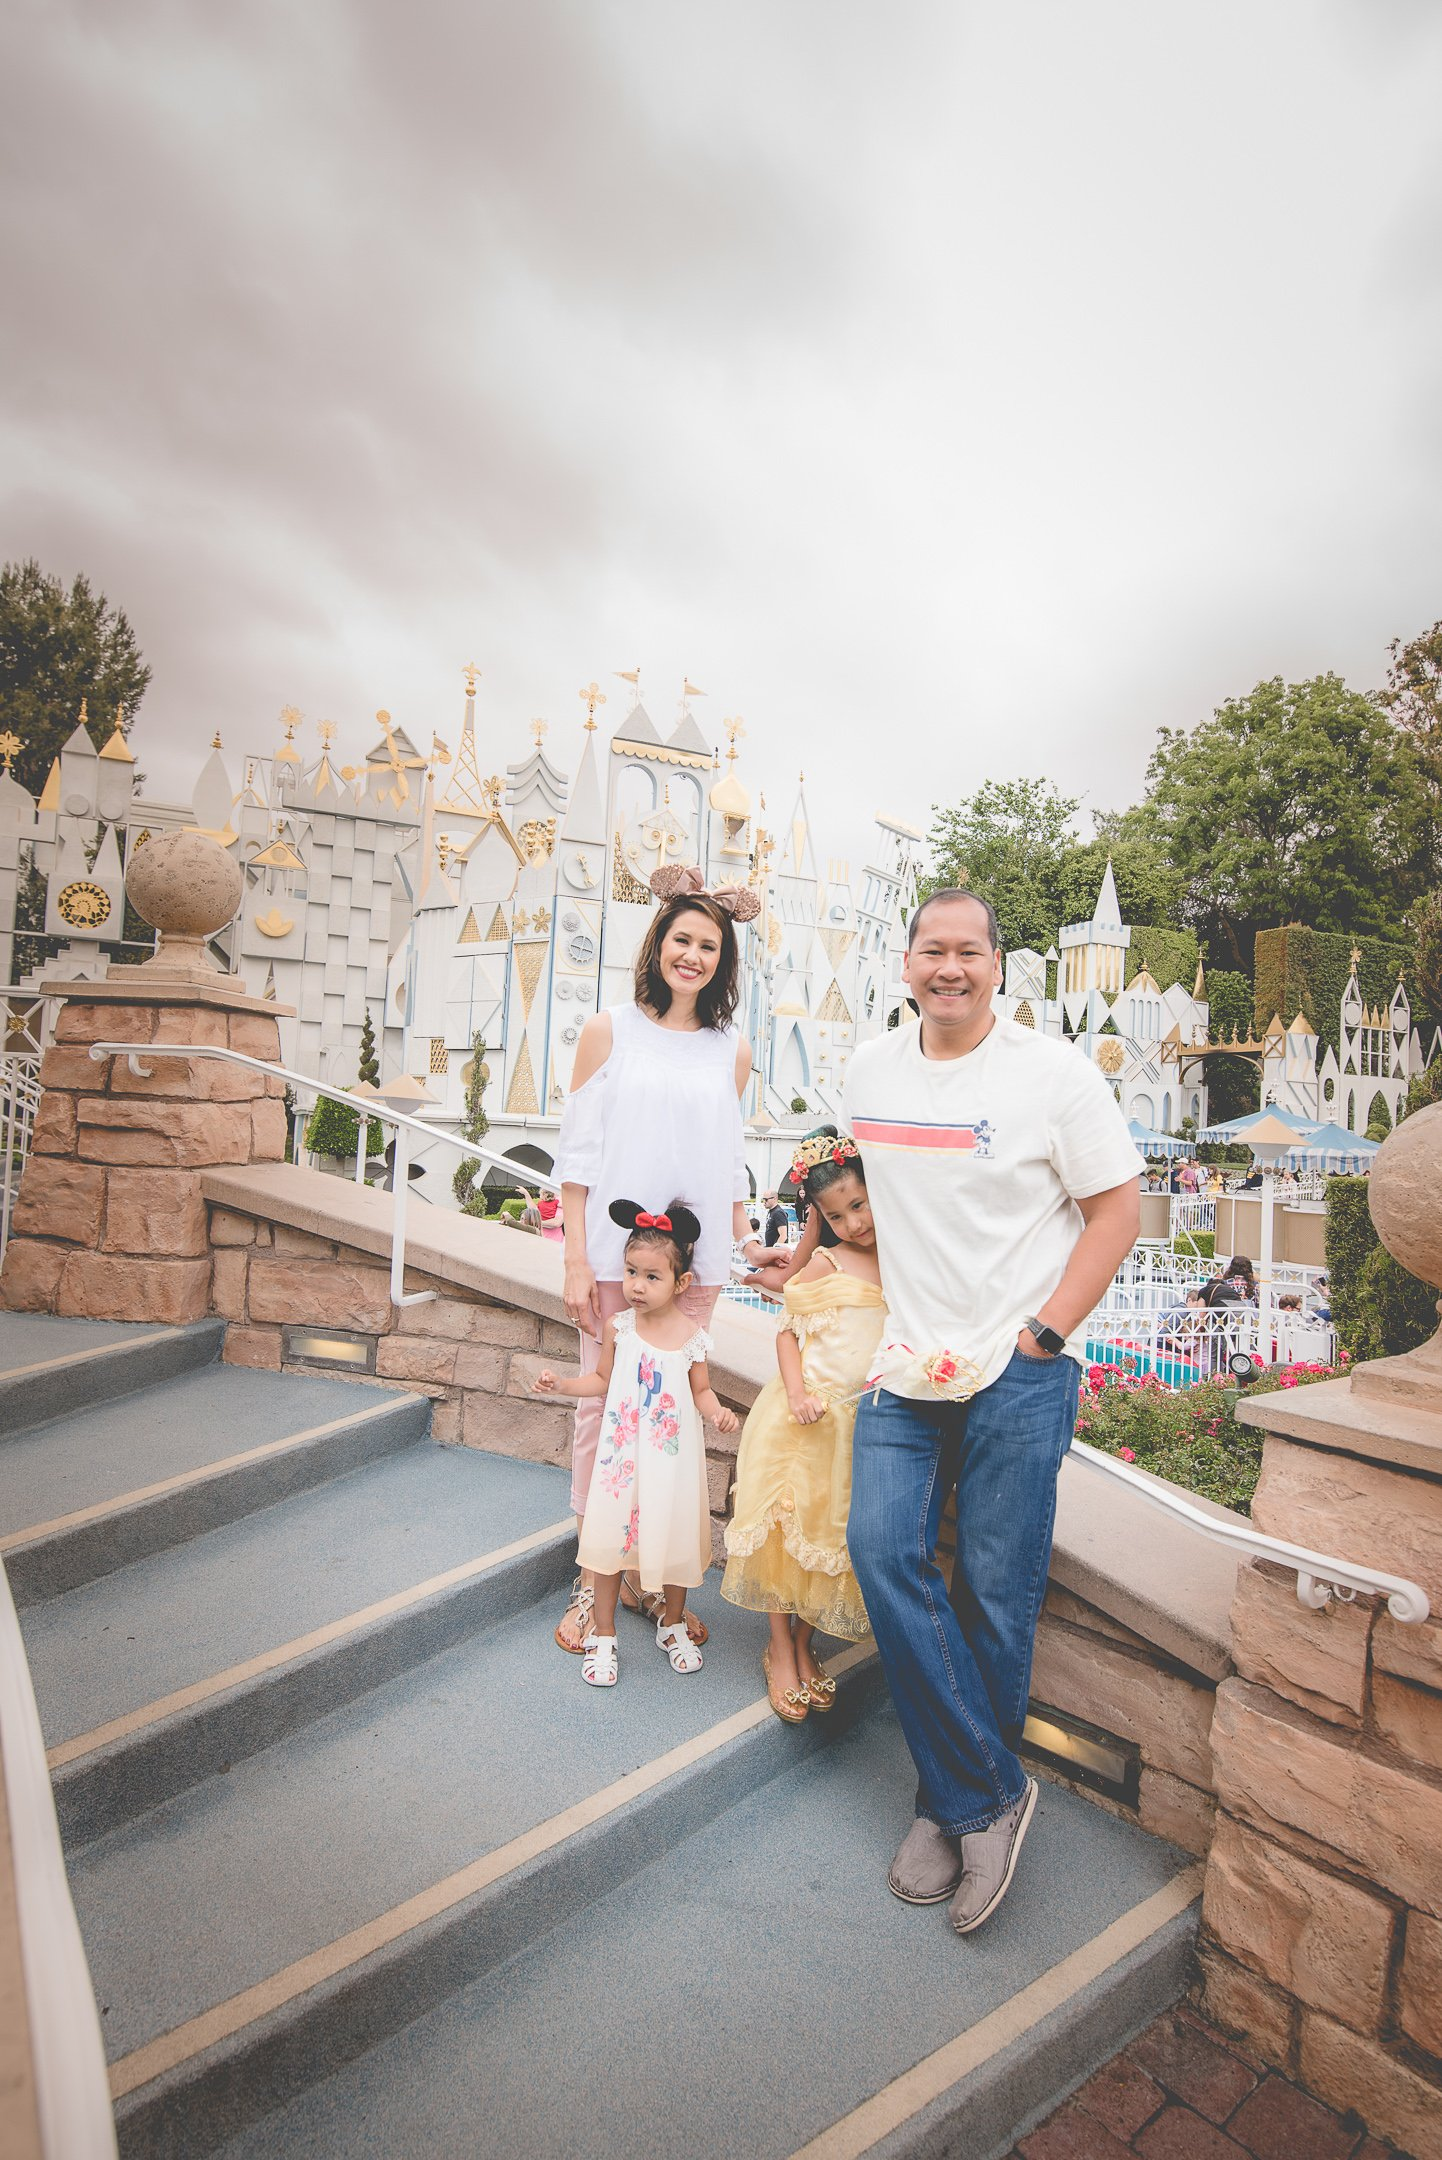 Family photo by the It's a small world ride in Disneyland, CA